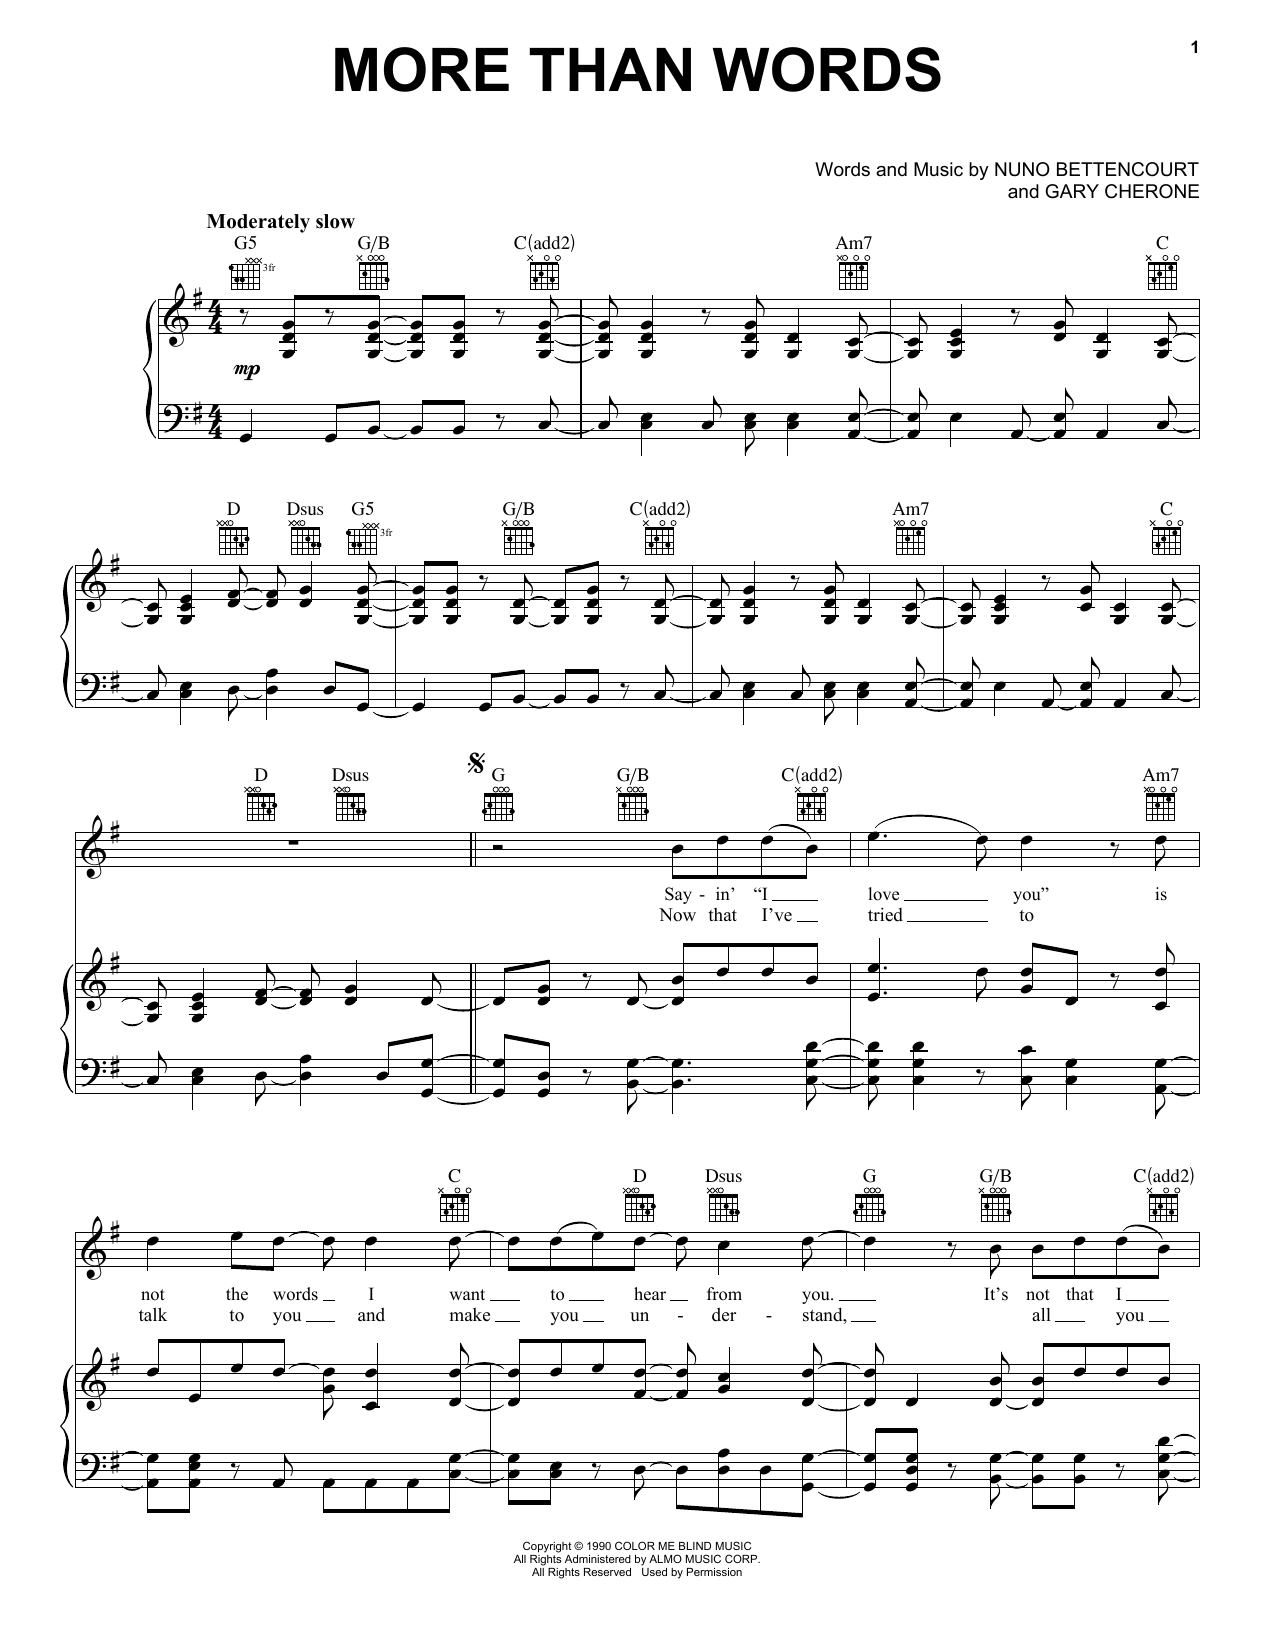 Extreme More Than Words sheet music preview music notes and score for Piano, Vocal & Guitar including 6 page(s)